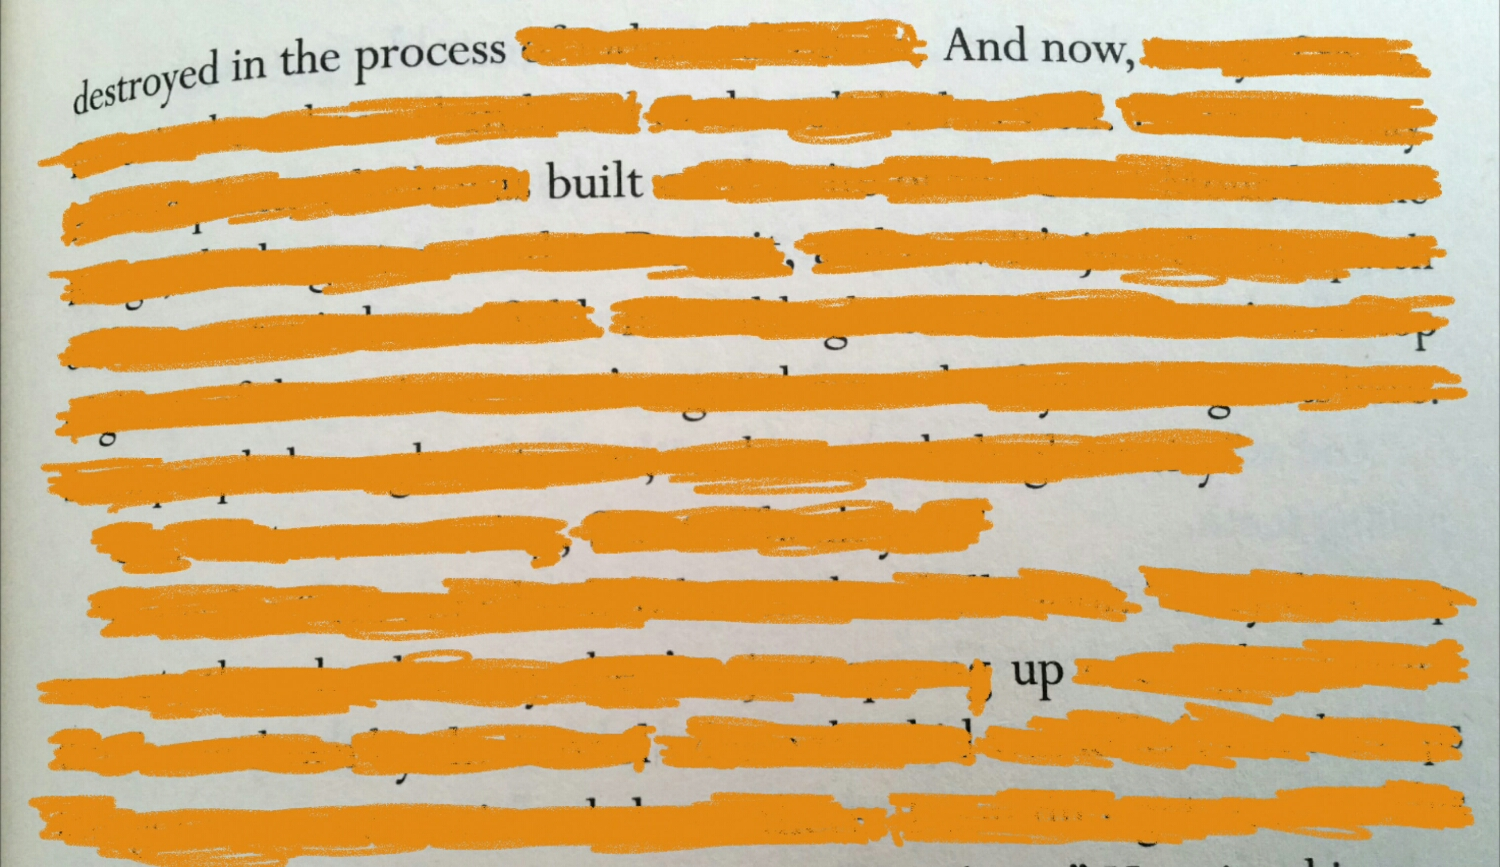 Destroyed in the process. And now, built up.